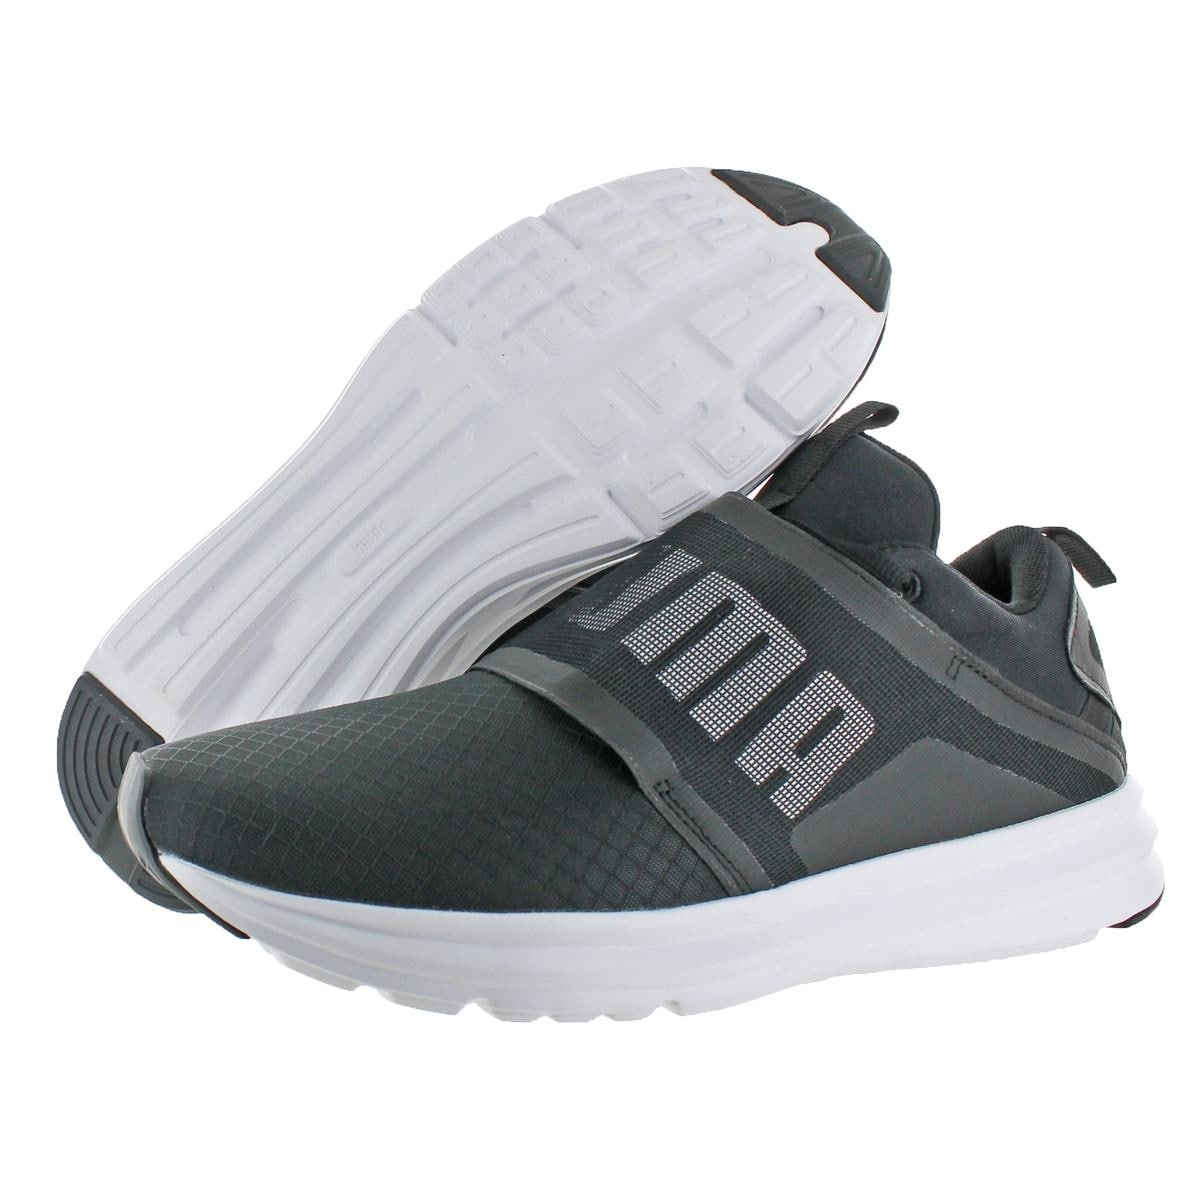 Shop Puma Mens Enzo Strap Nautical Running Shoes SoftFoam Fashion - Free  Shipping On Orders Over  45 - Overstock - 21936882 dbdbeb5ae